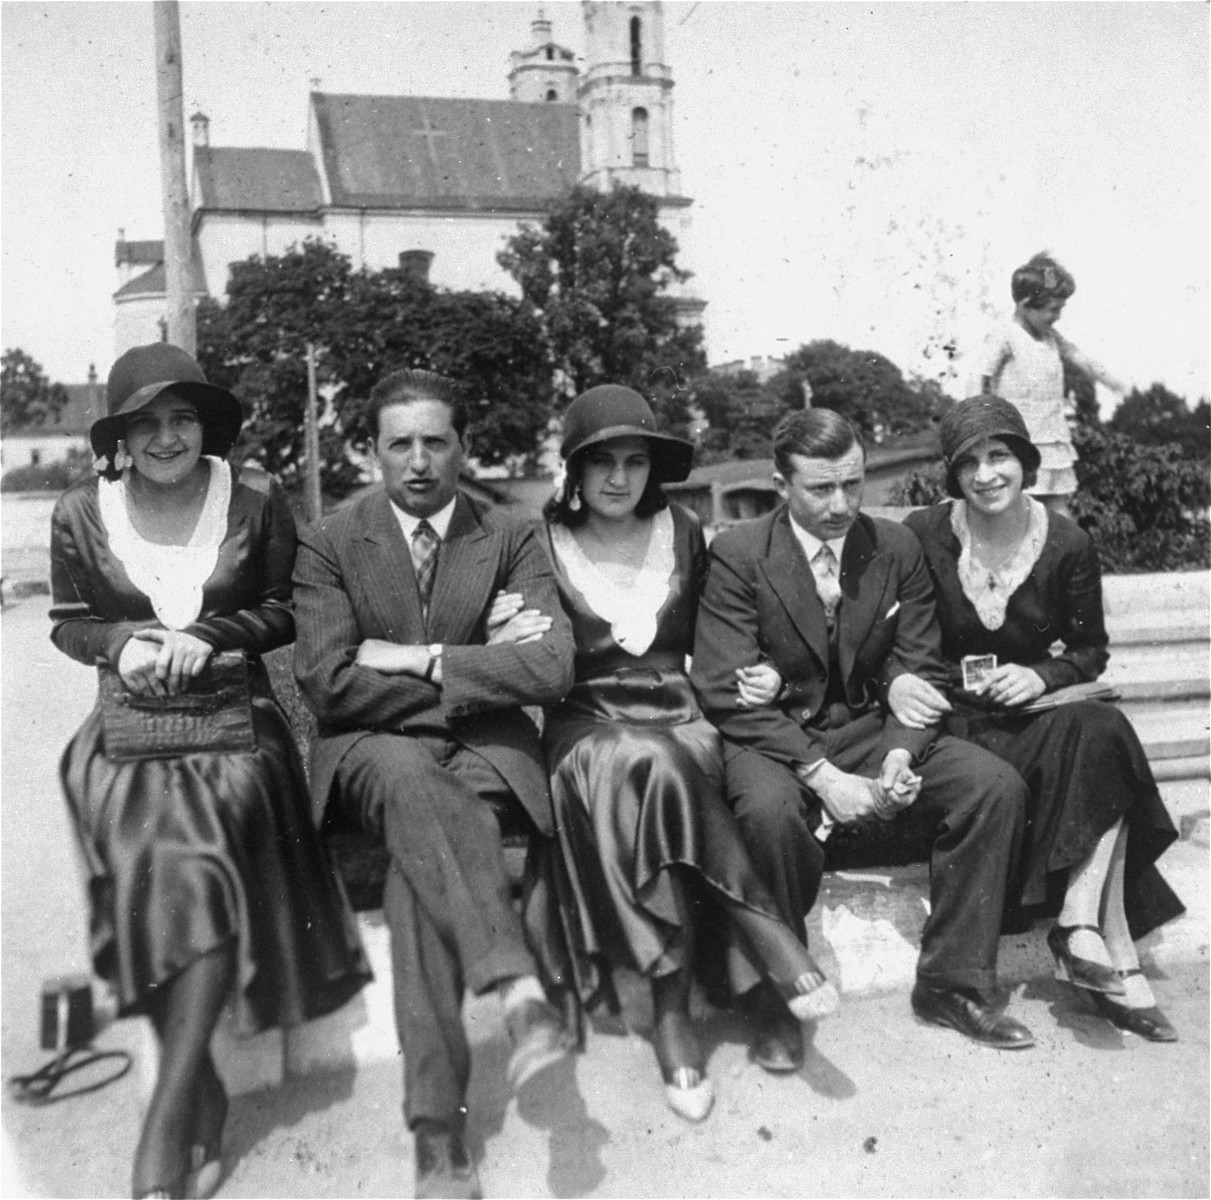 A group of young Jewish men and women sit on a bench in Vilna's Cathedral Square.  Pictured from left to right are: Riva Kugel, Isak Kremer, Etya Kugel (Riva's twin), an unknown friend, and Raya Magid.  Etya and Riva immigrated to Palestine in 1938.